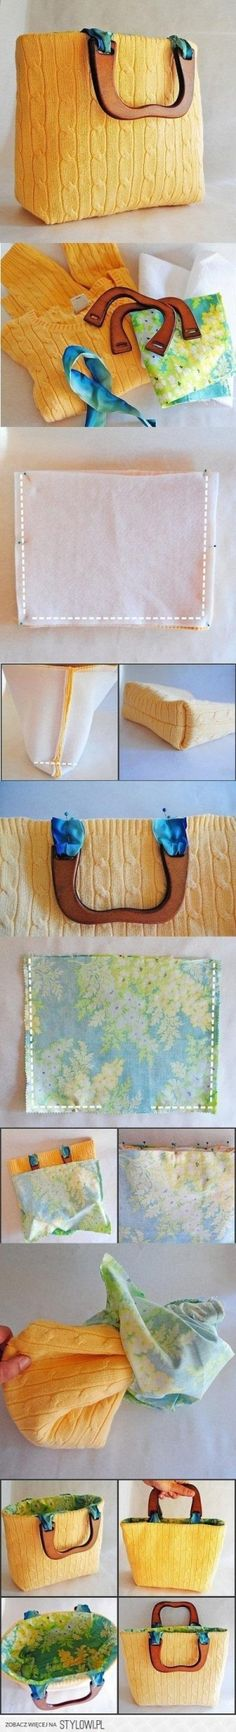 felting: a beautiful bag from a sweater.